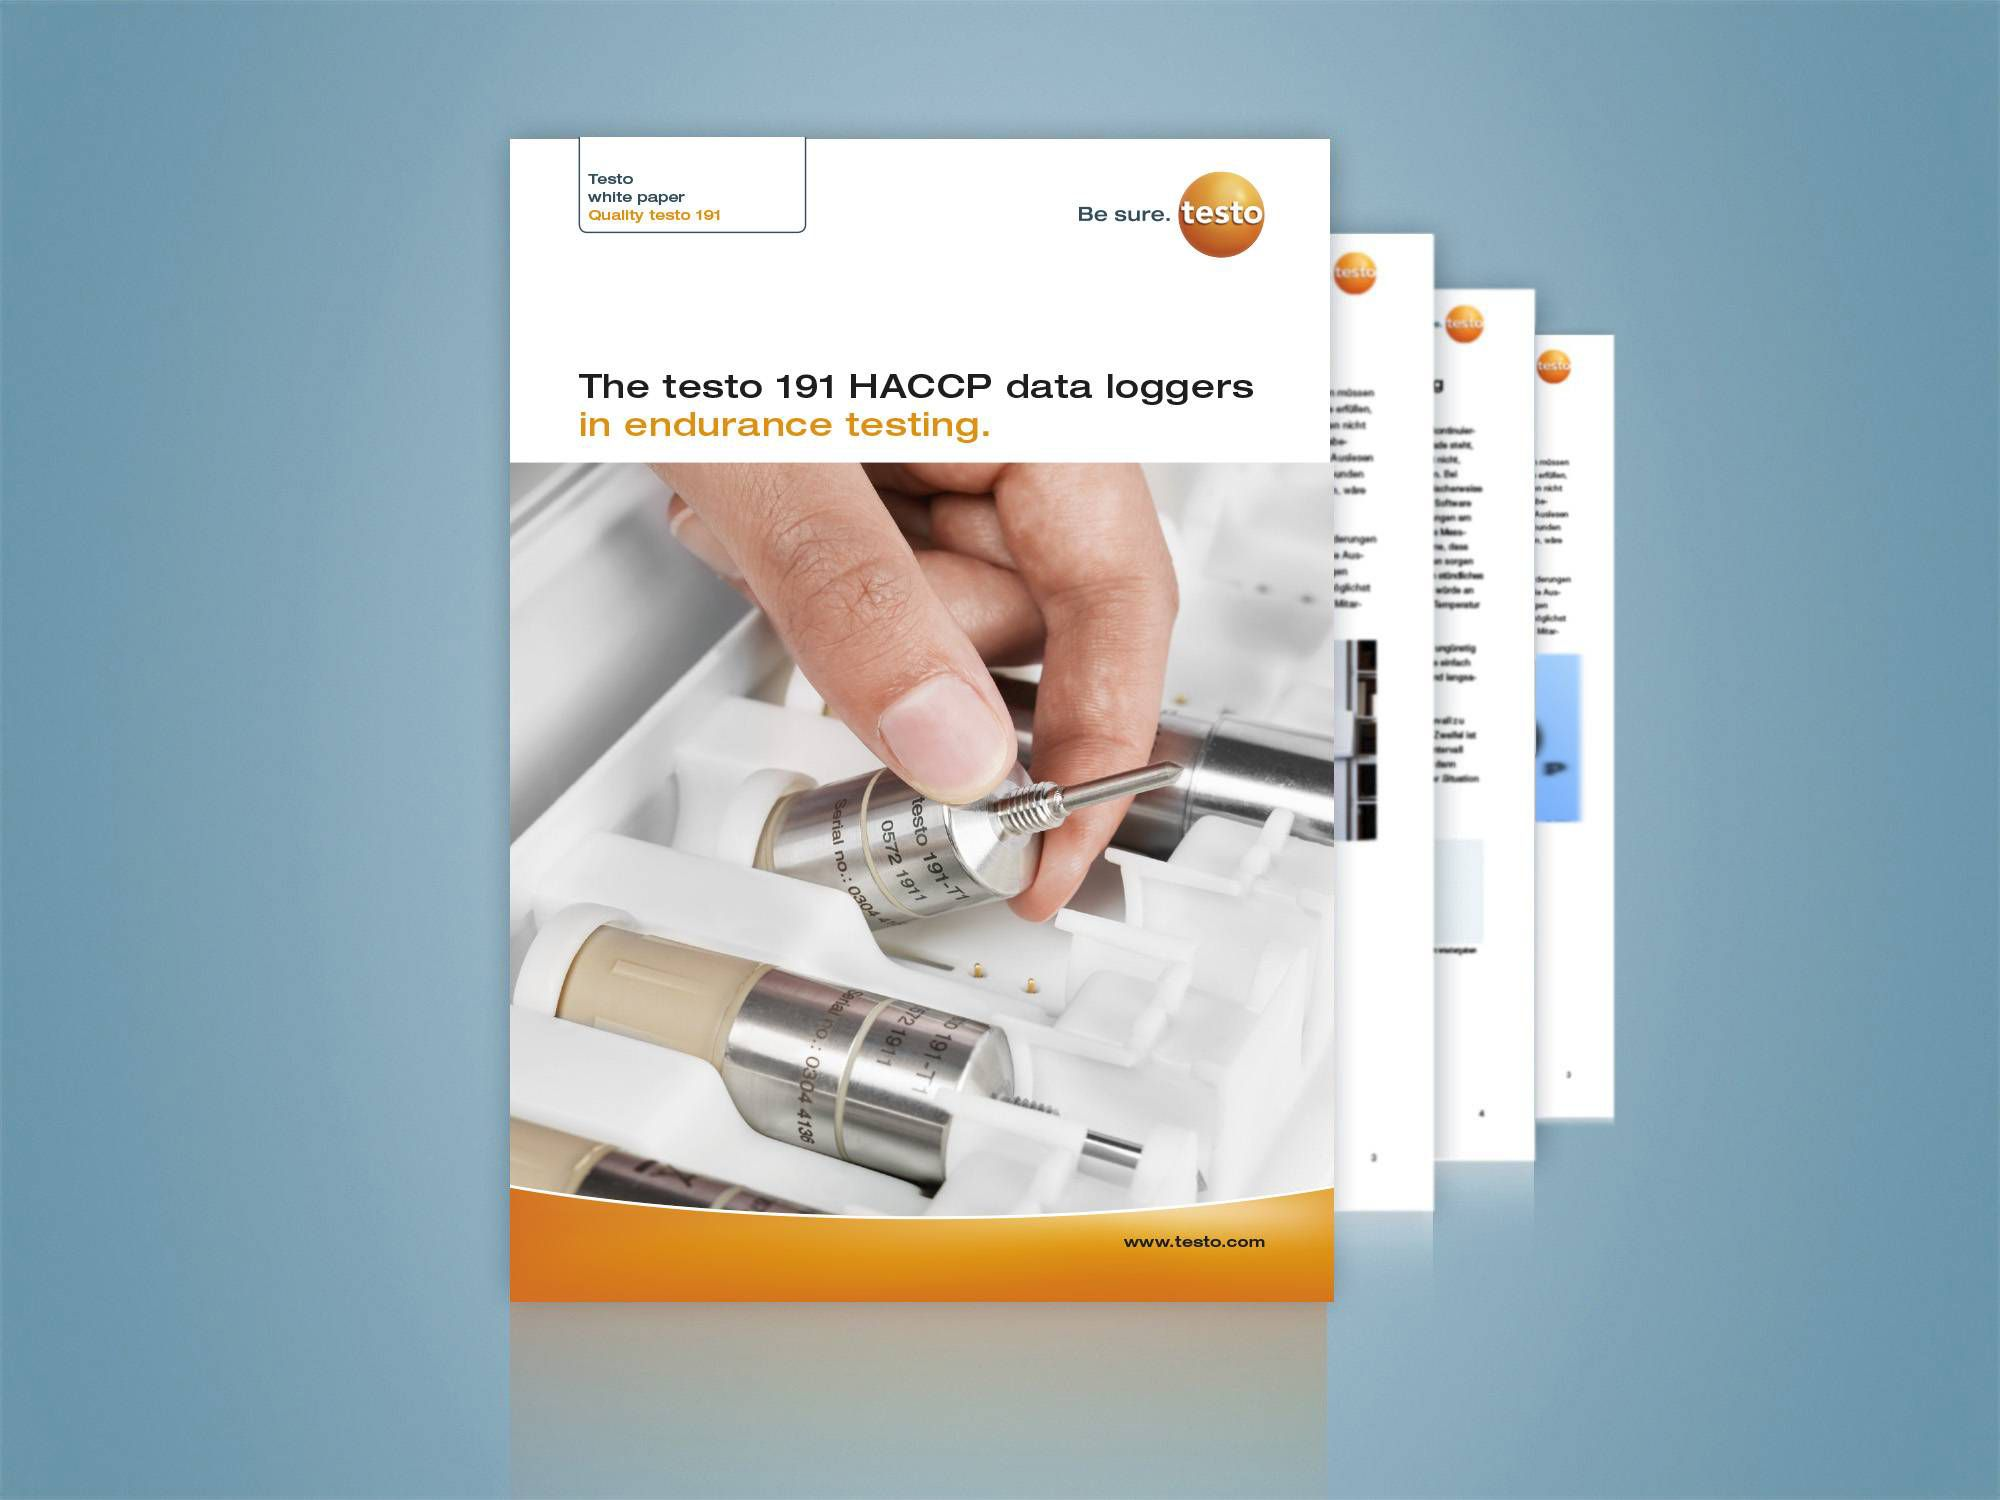 download-whitepaper-testo-191-2000x1500-EN.jpg